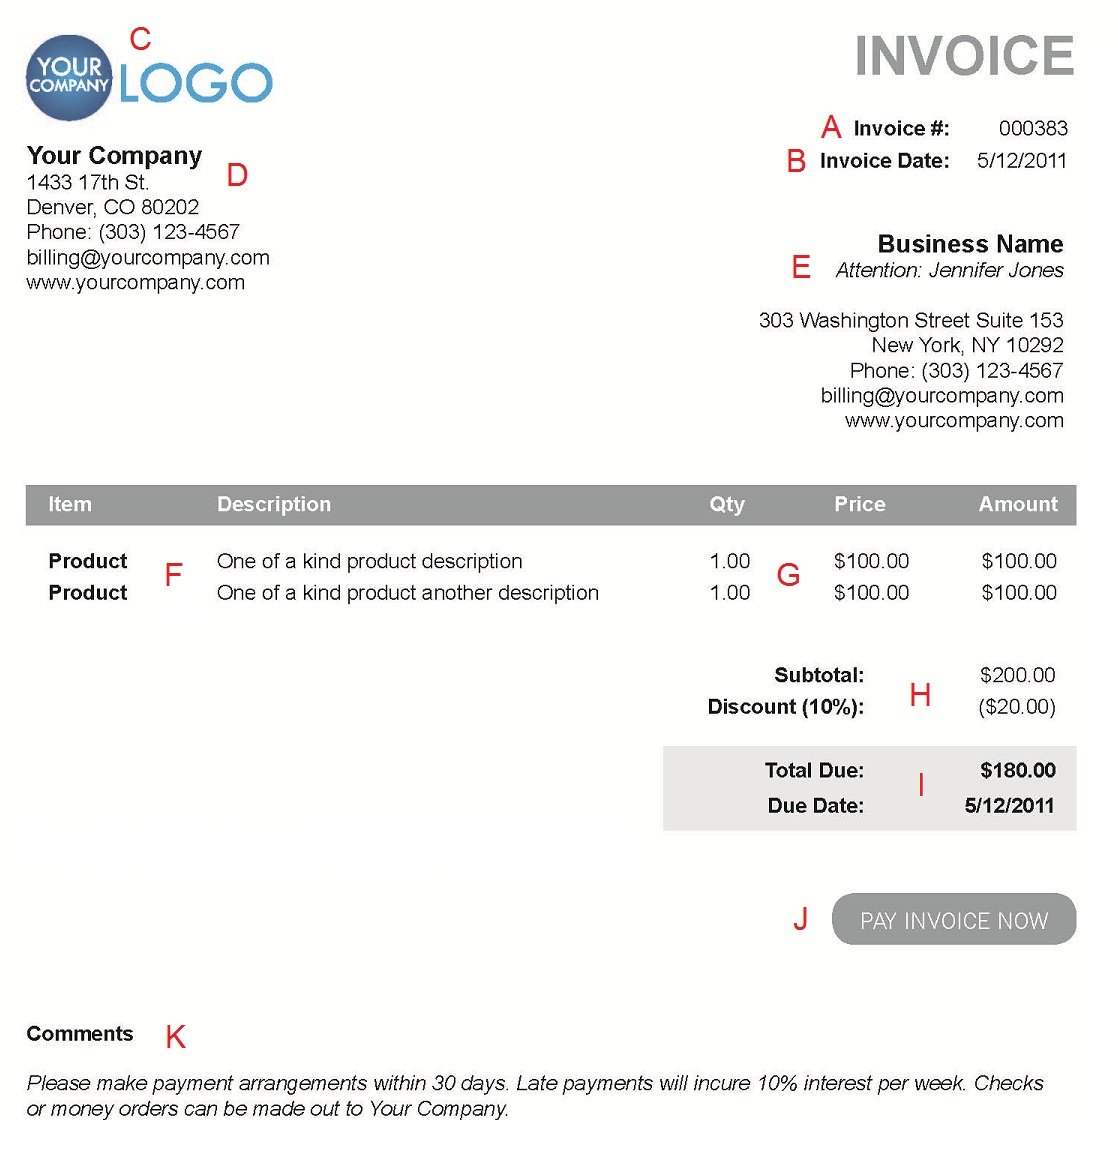 Coolmathgamesus  Scenic The  Different Sections Of An Electronic Payment Invoice With Hot A  With Divine Pi Proforma Invoice Also Citylink Late Toll Invoice In Addition Invoice Customers And Terms And Conditions Of Invoice As Well As Tax Invoice Requirement Additionally Do You Need An Abn To Invoice From Paysimplecom With Coolmathgamesus  Hot The  Different Sections Of An Electronic Payment Invoice With Divine A  And Scenic Pi Proforma Invoice Also Citylink Late Toll Invoice In Addition Invoice Customers From Paysimplecom